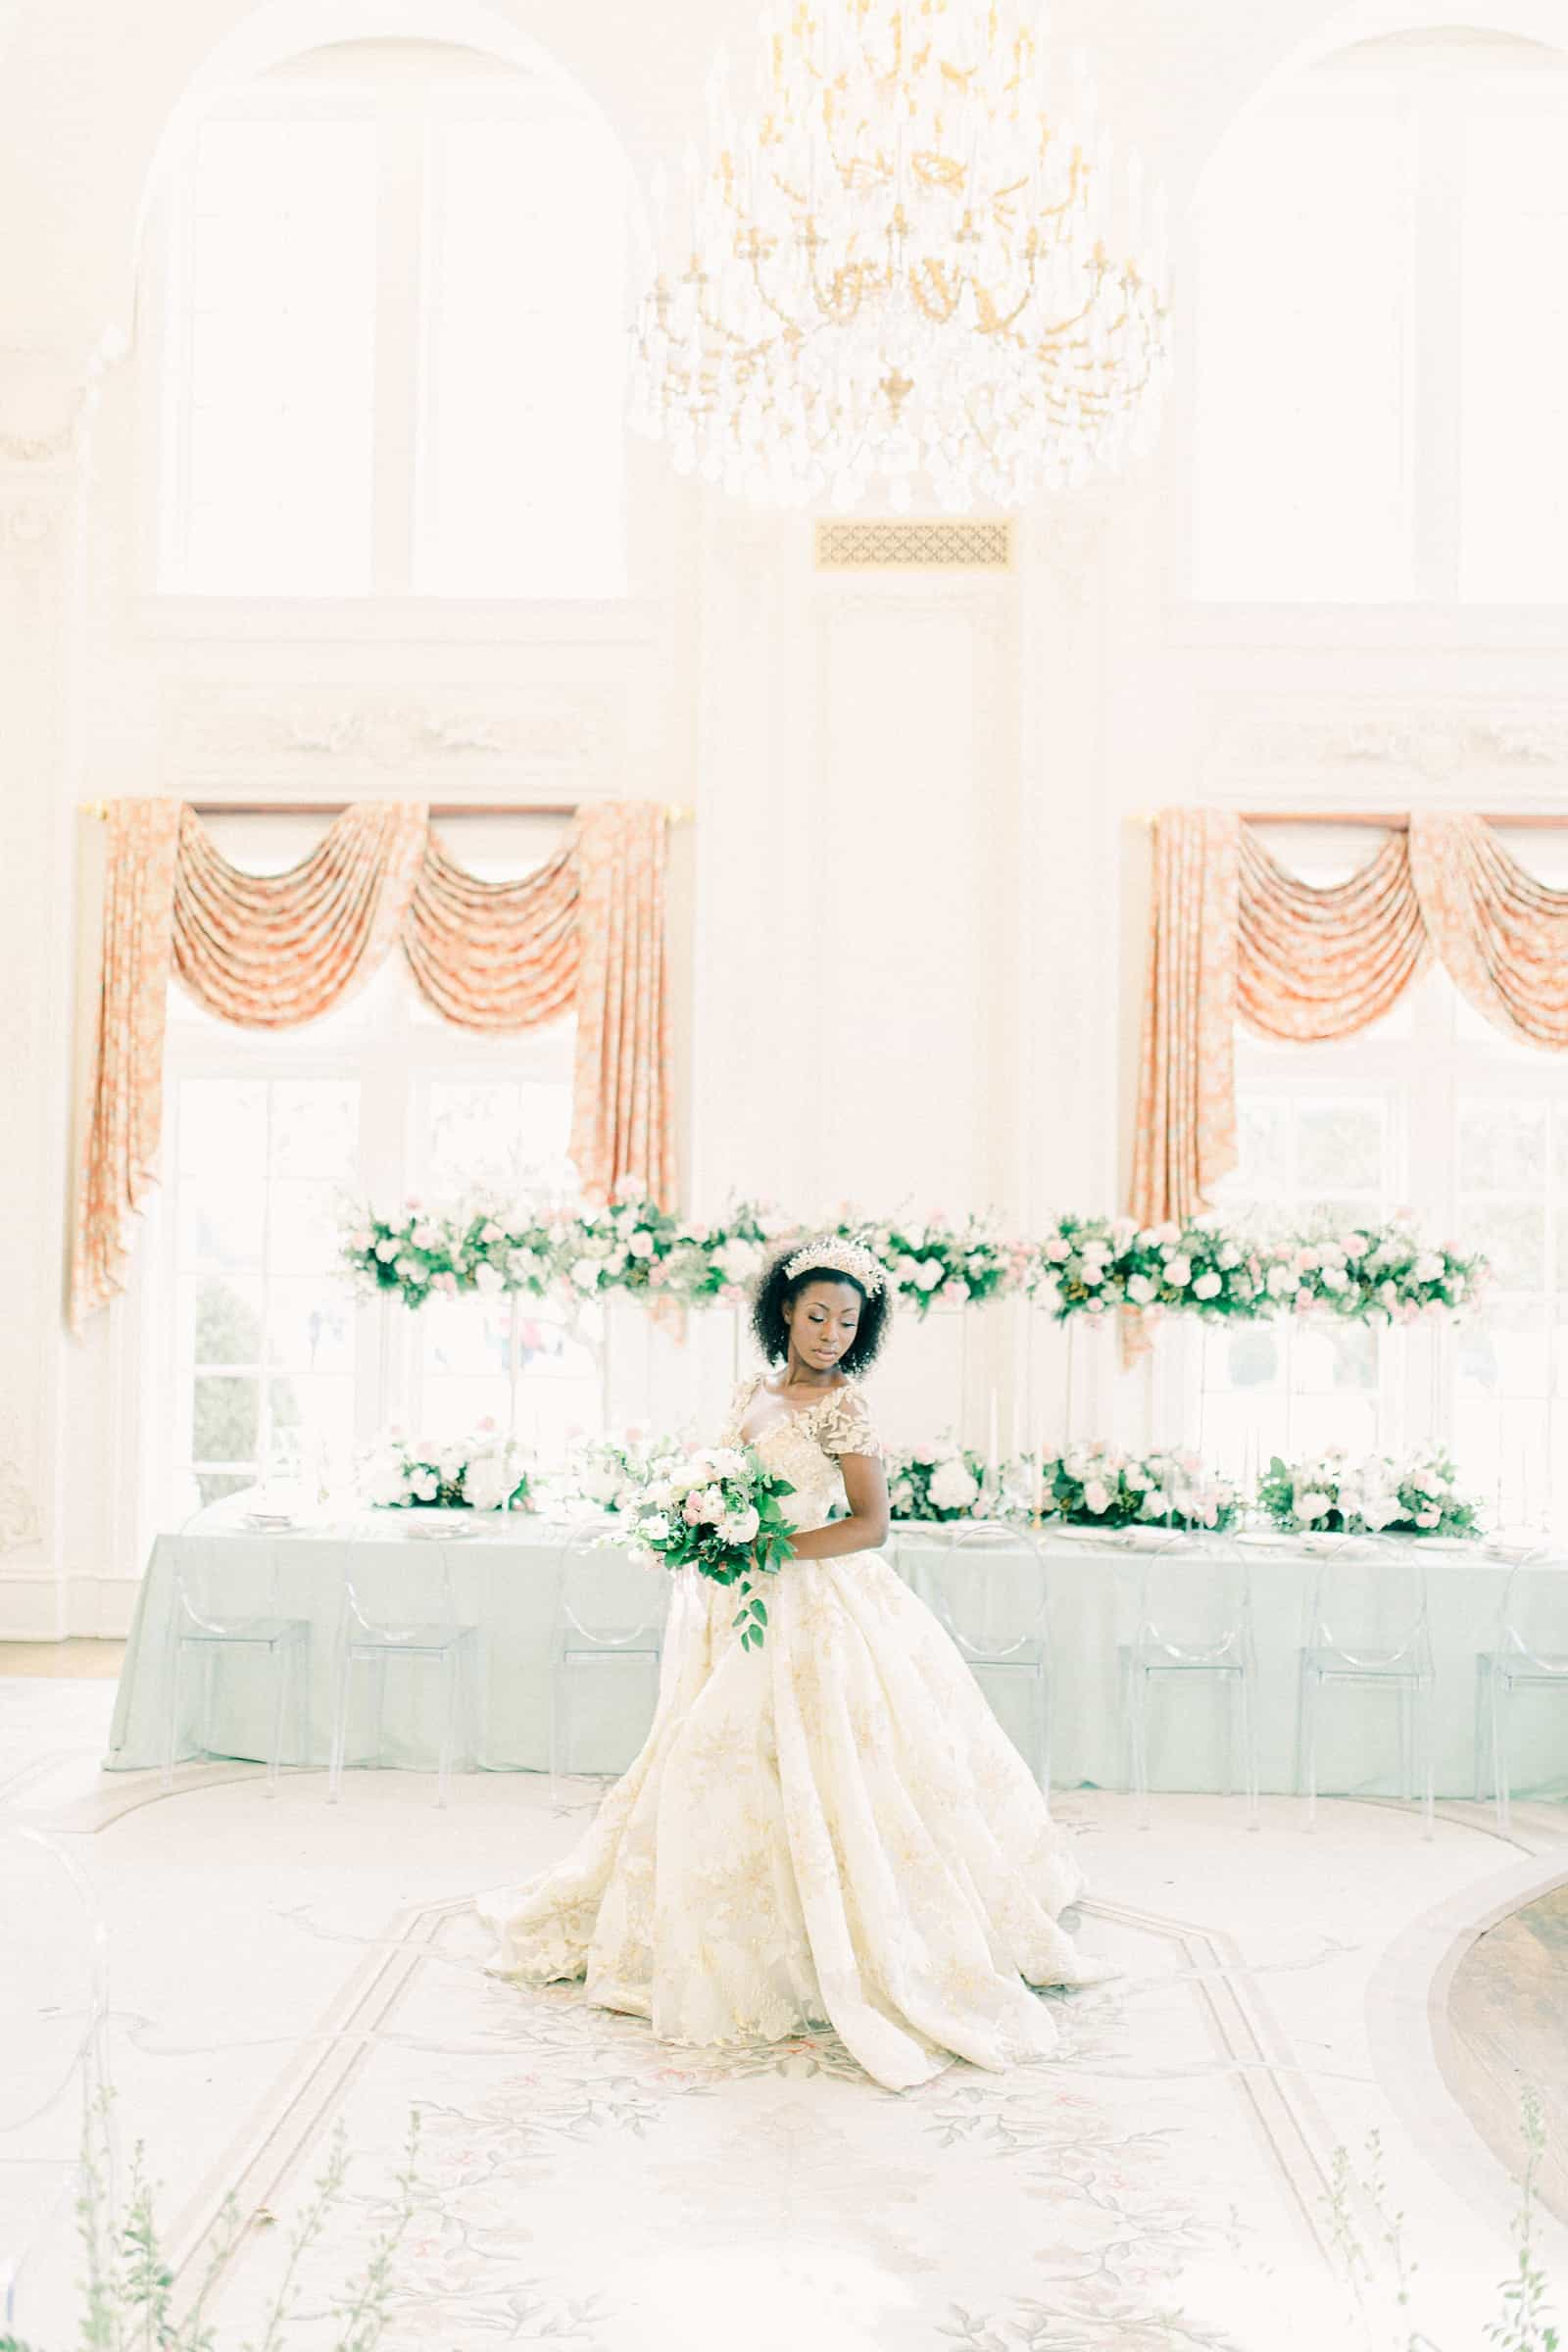 Bride wearing lace ball gown in front of long dining table with light blue tablecloth and tall canopy centerpieces